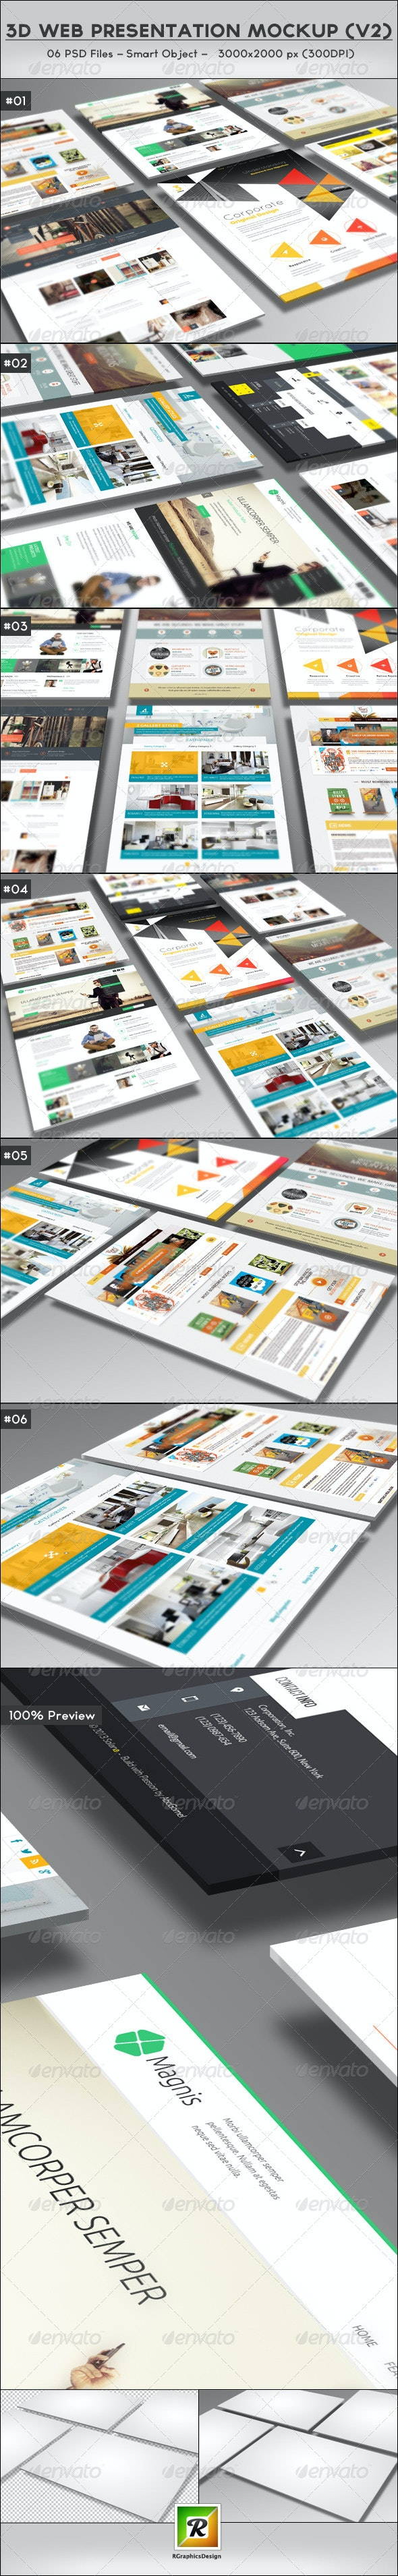 3D Web Presentation Mockup (V2) - Website Displays